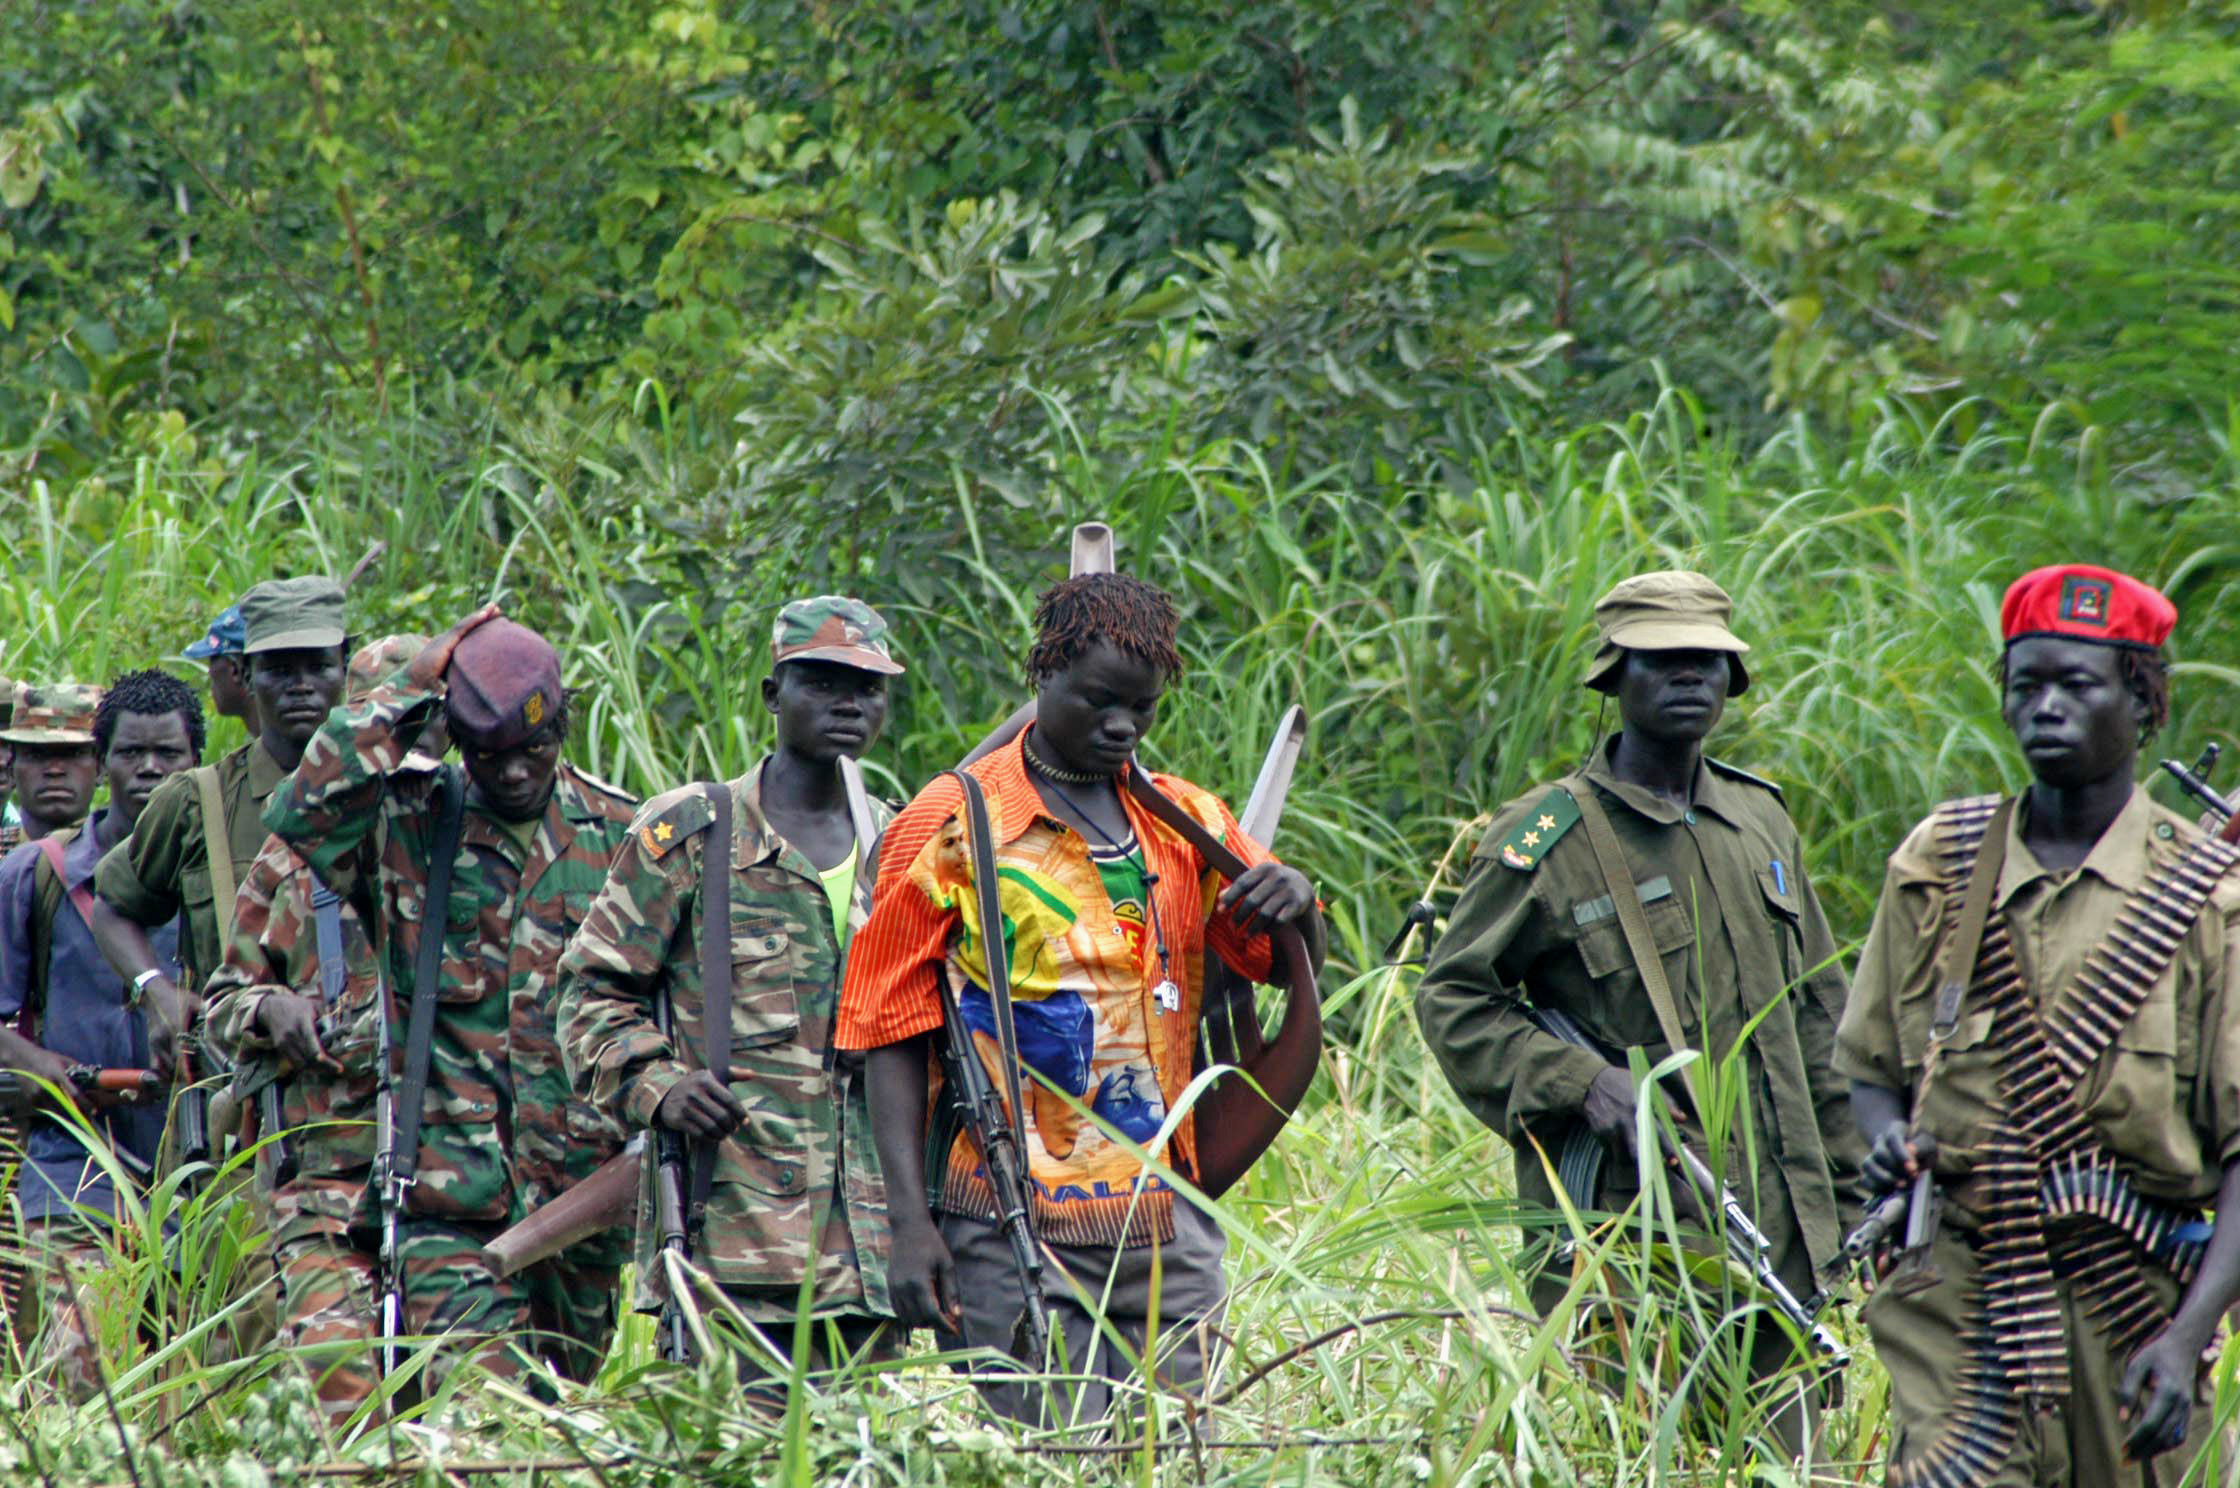 Policy Alert: U.S. and A.U. Diplomacy Needed to Halt Kony's New Chance to Regroup